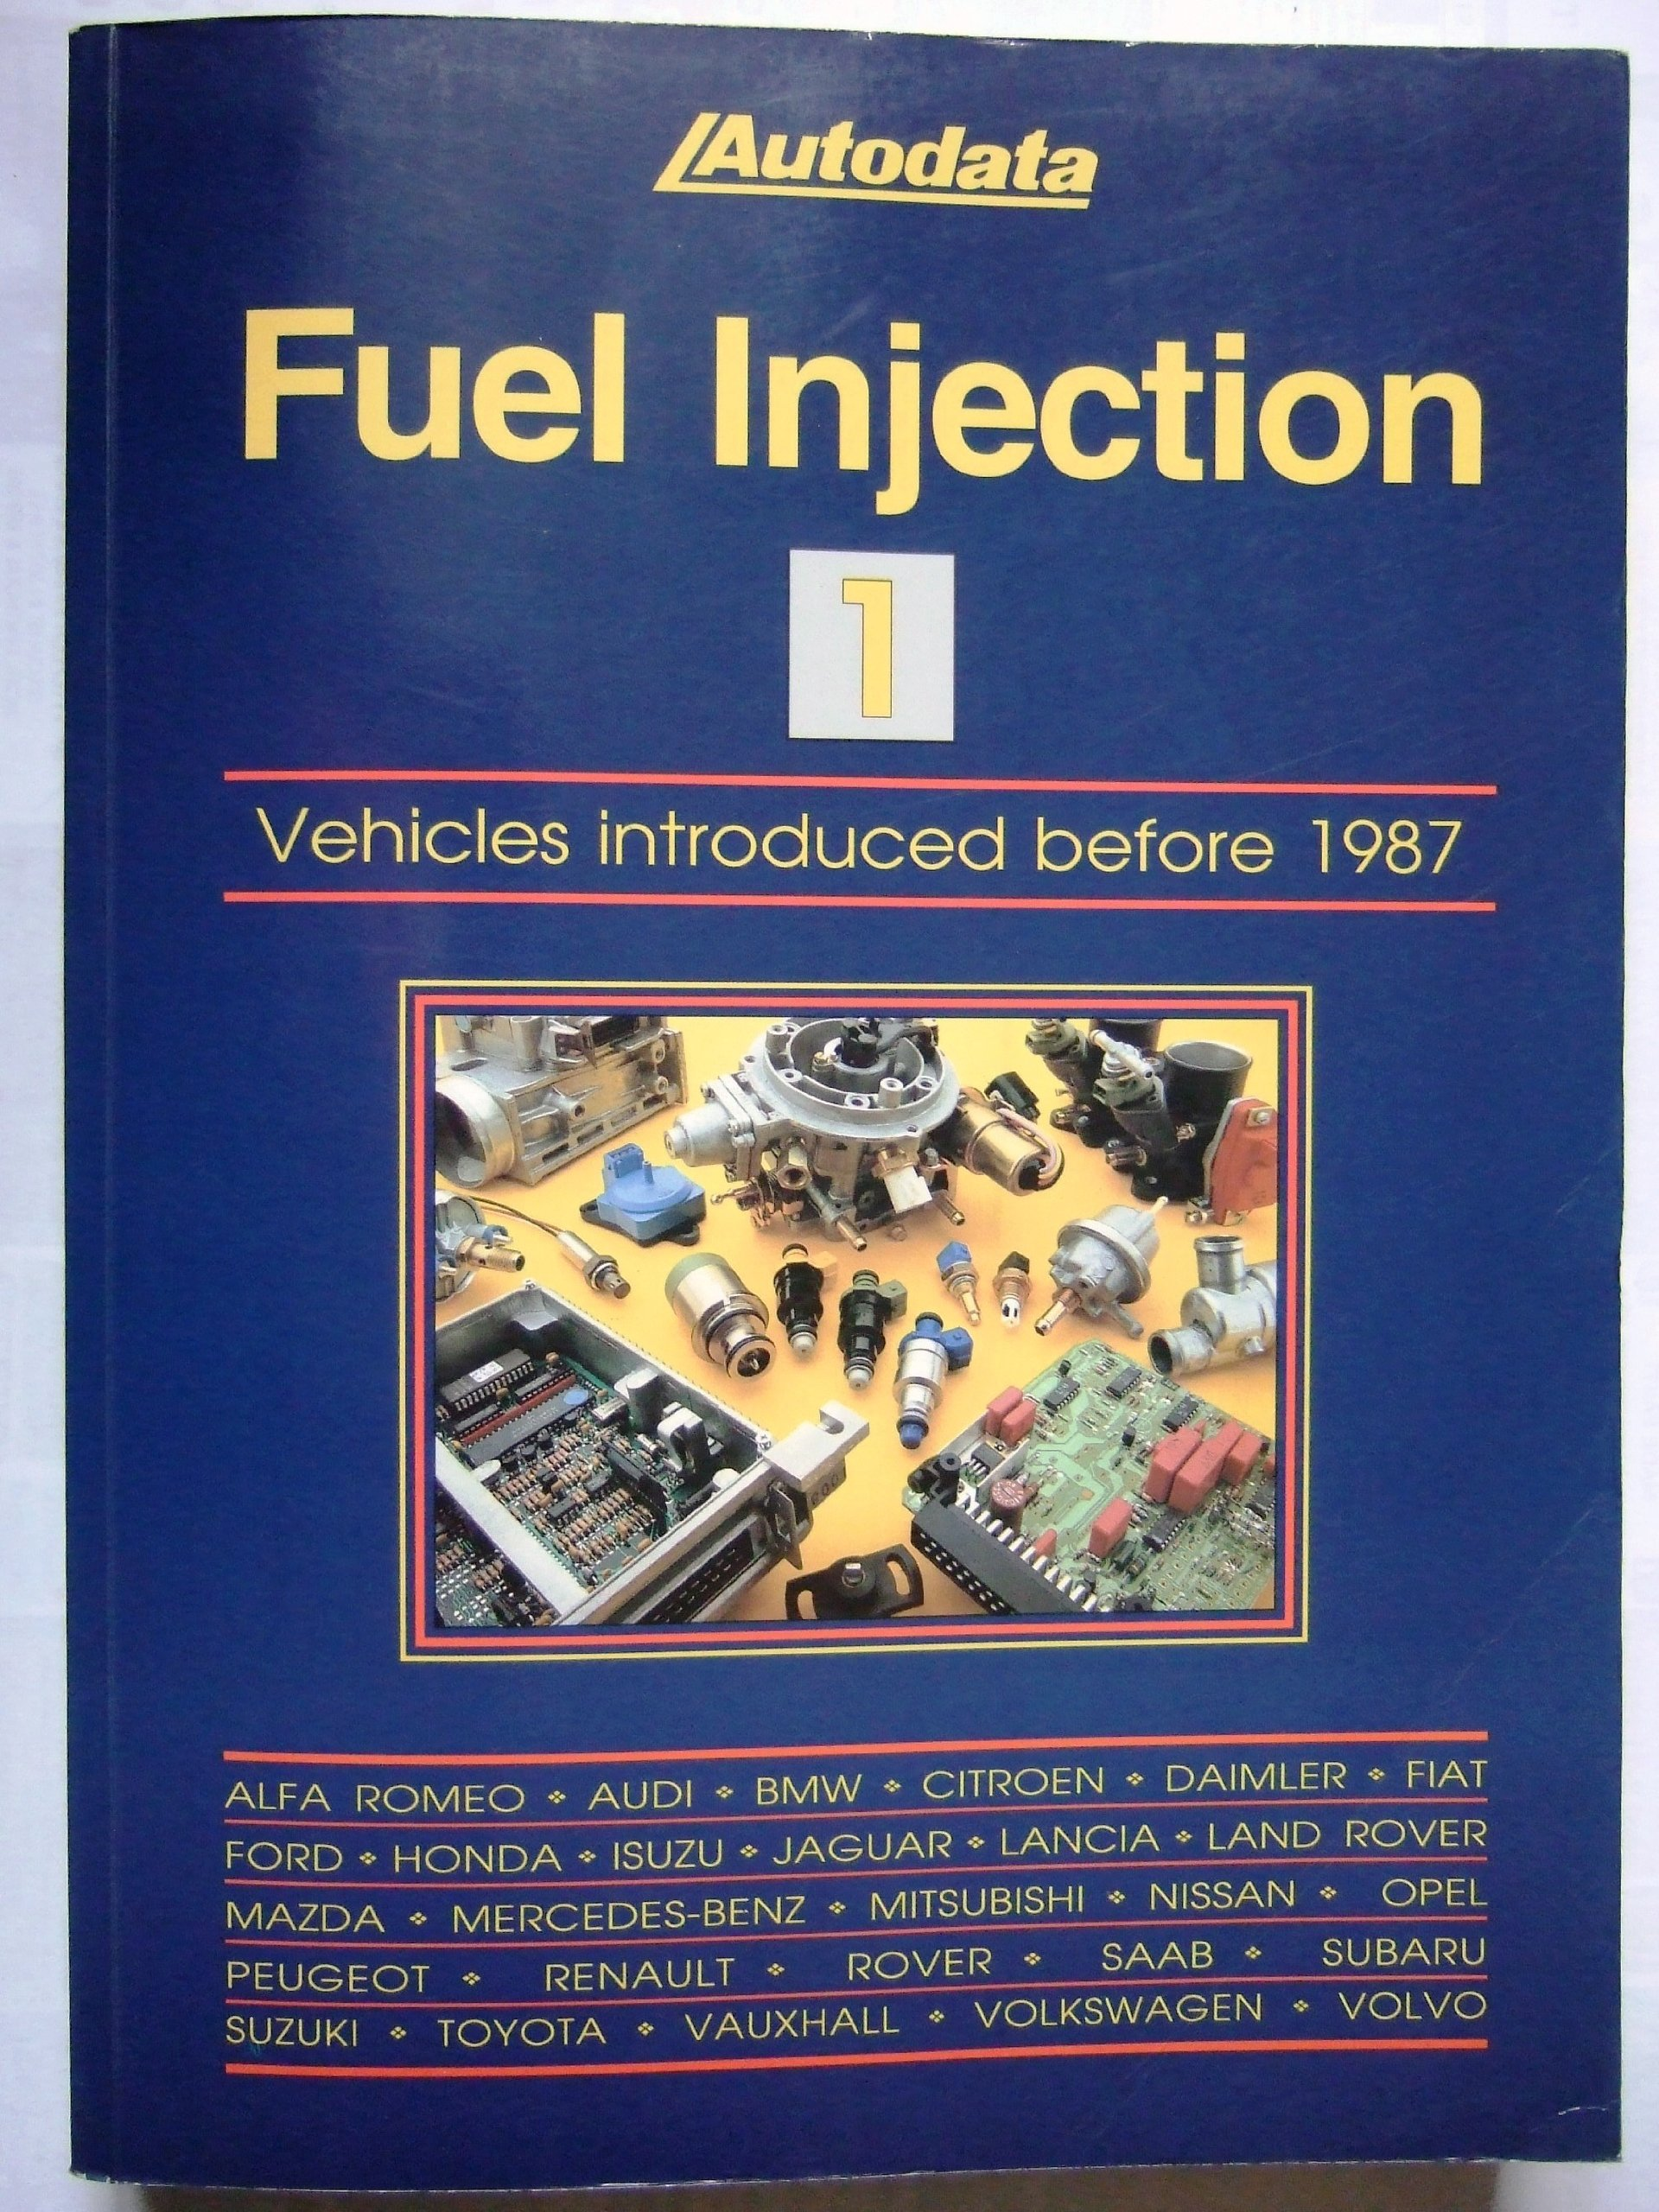 Fuel Injection 1 - Models Introduced before 1987 (Carburettor & fuel